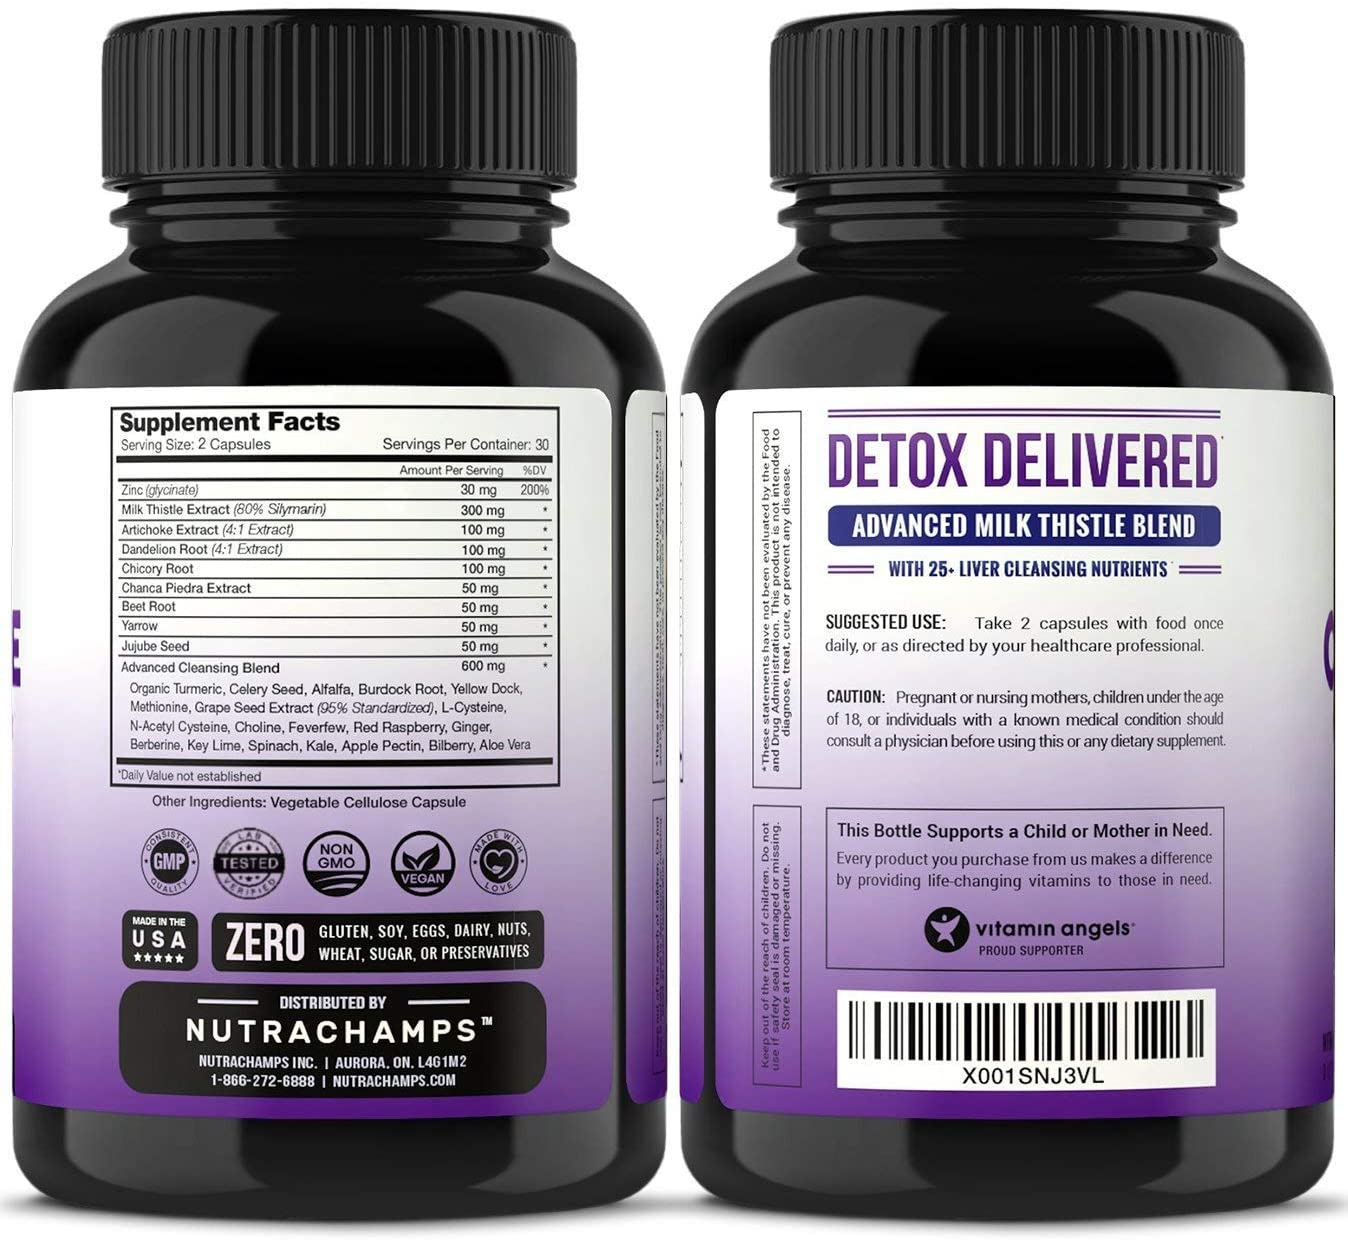 Liver Cleanse Detox Repair Formula – 25 Herbs Milk Thistle Extract with Silymarin, Artichoke, Dandelion, Chicory Root Powder More – Premium Liver Support Pills Supplement – 60 Capsules